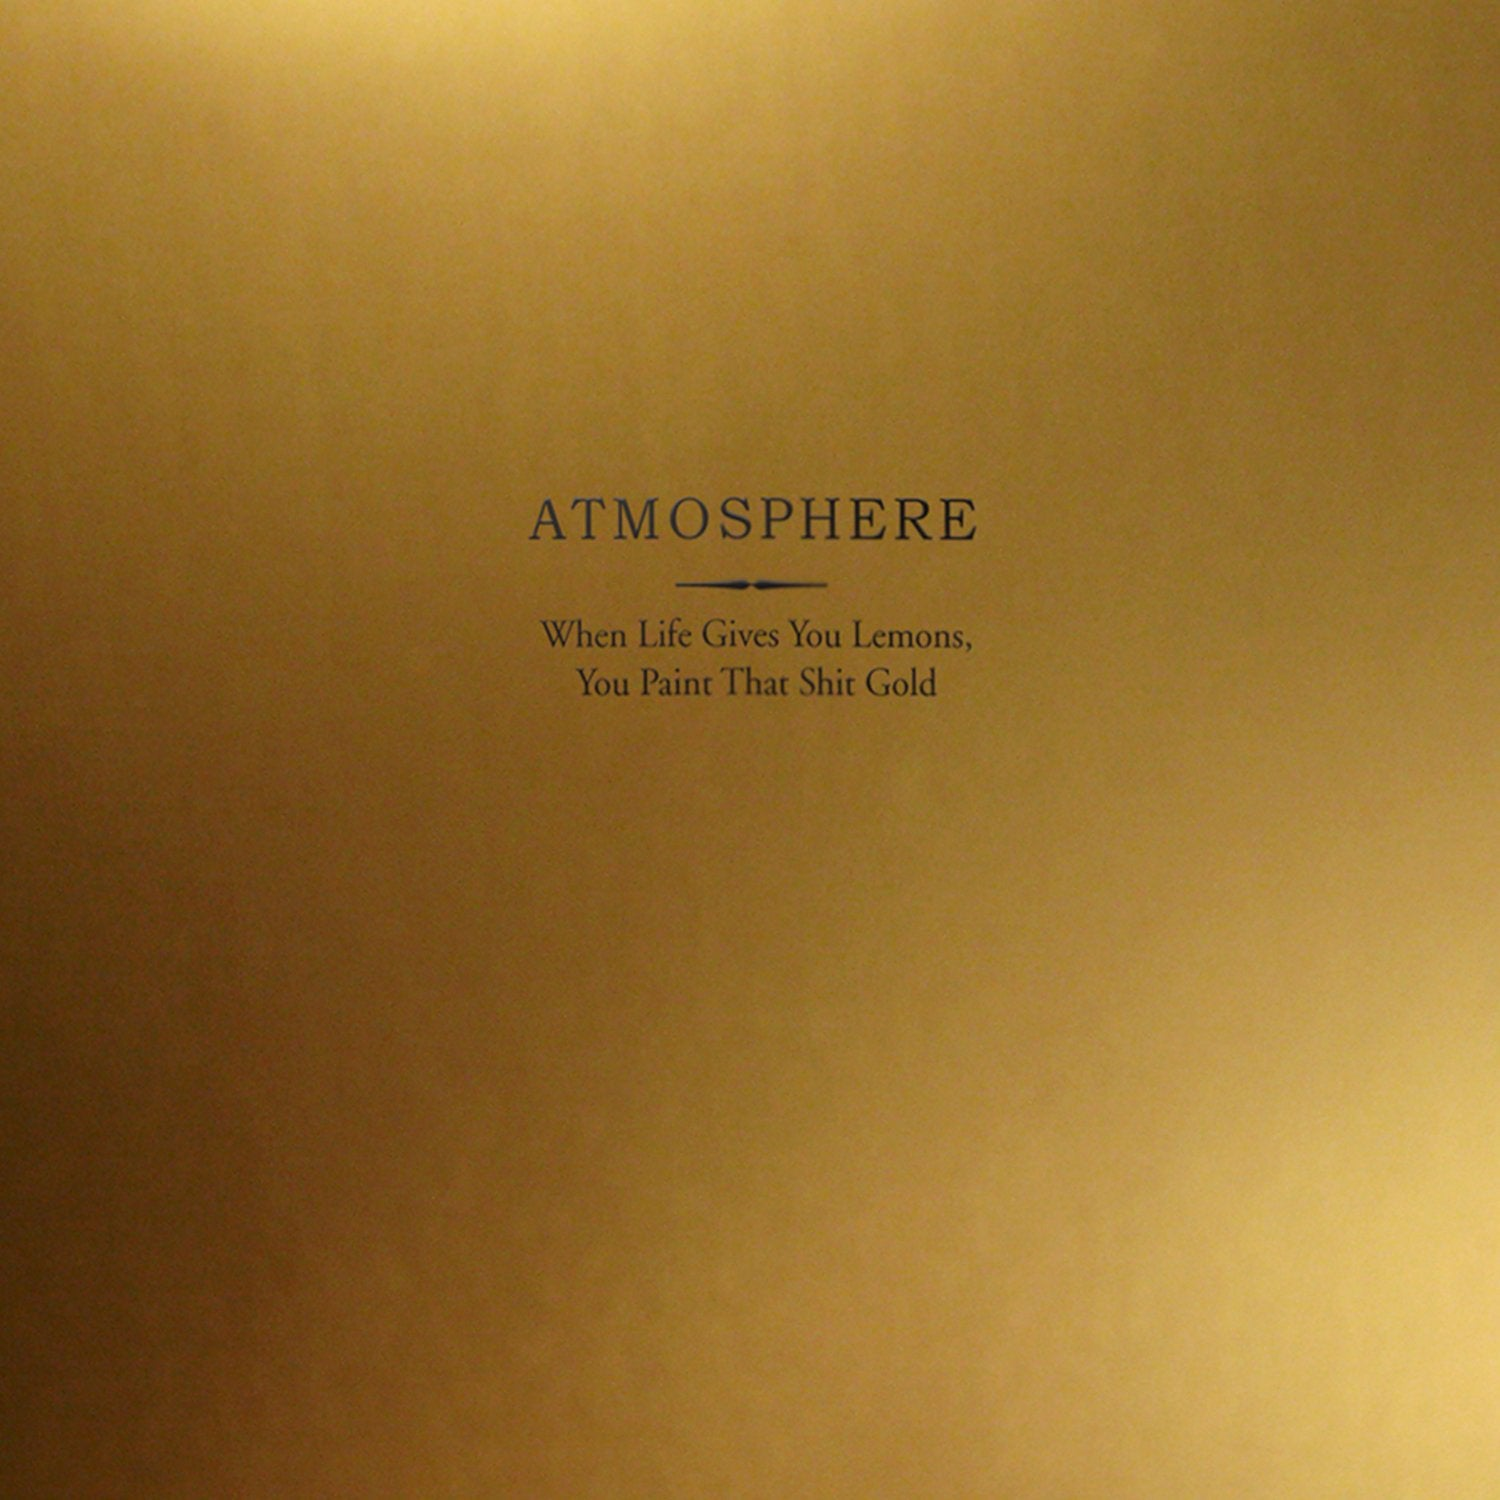 Atmosphere - When Life Gives You Lemons... 10 Year Anniversary Edition - 2xLP